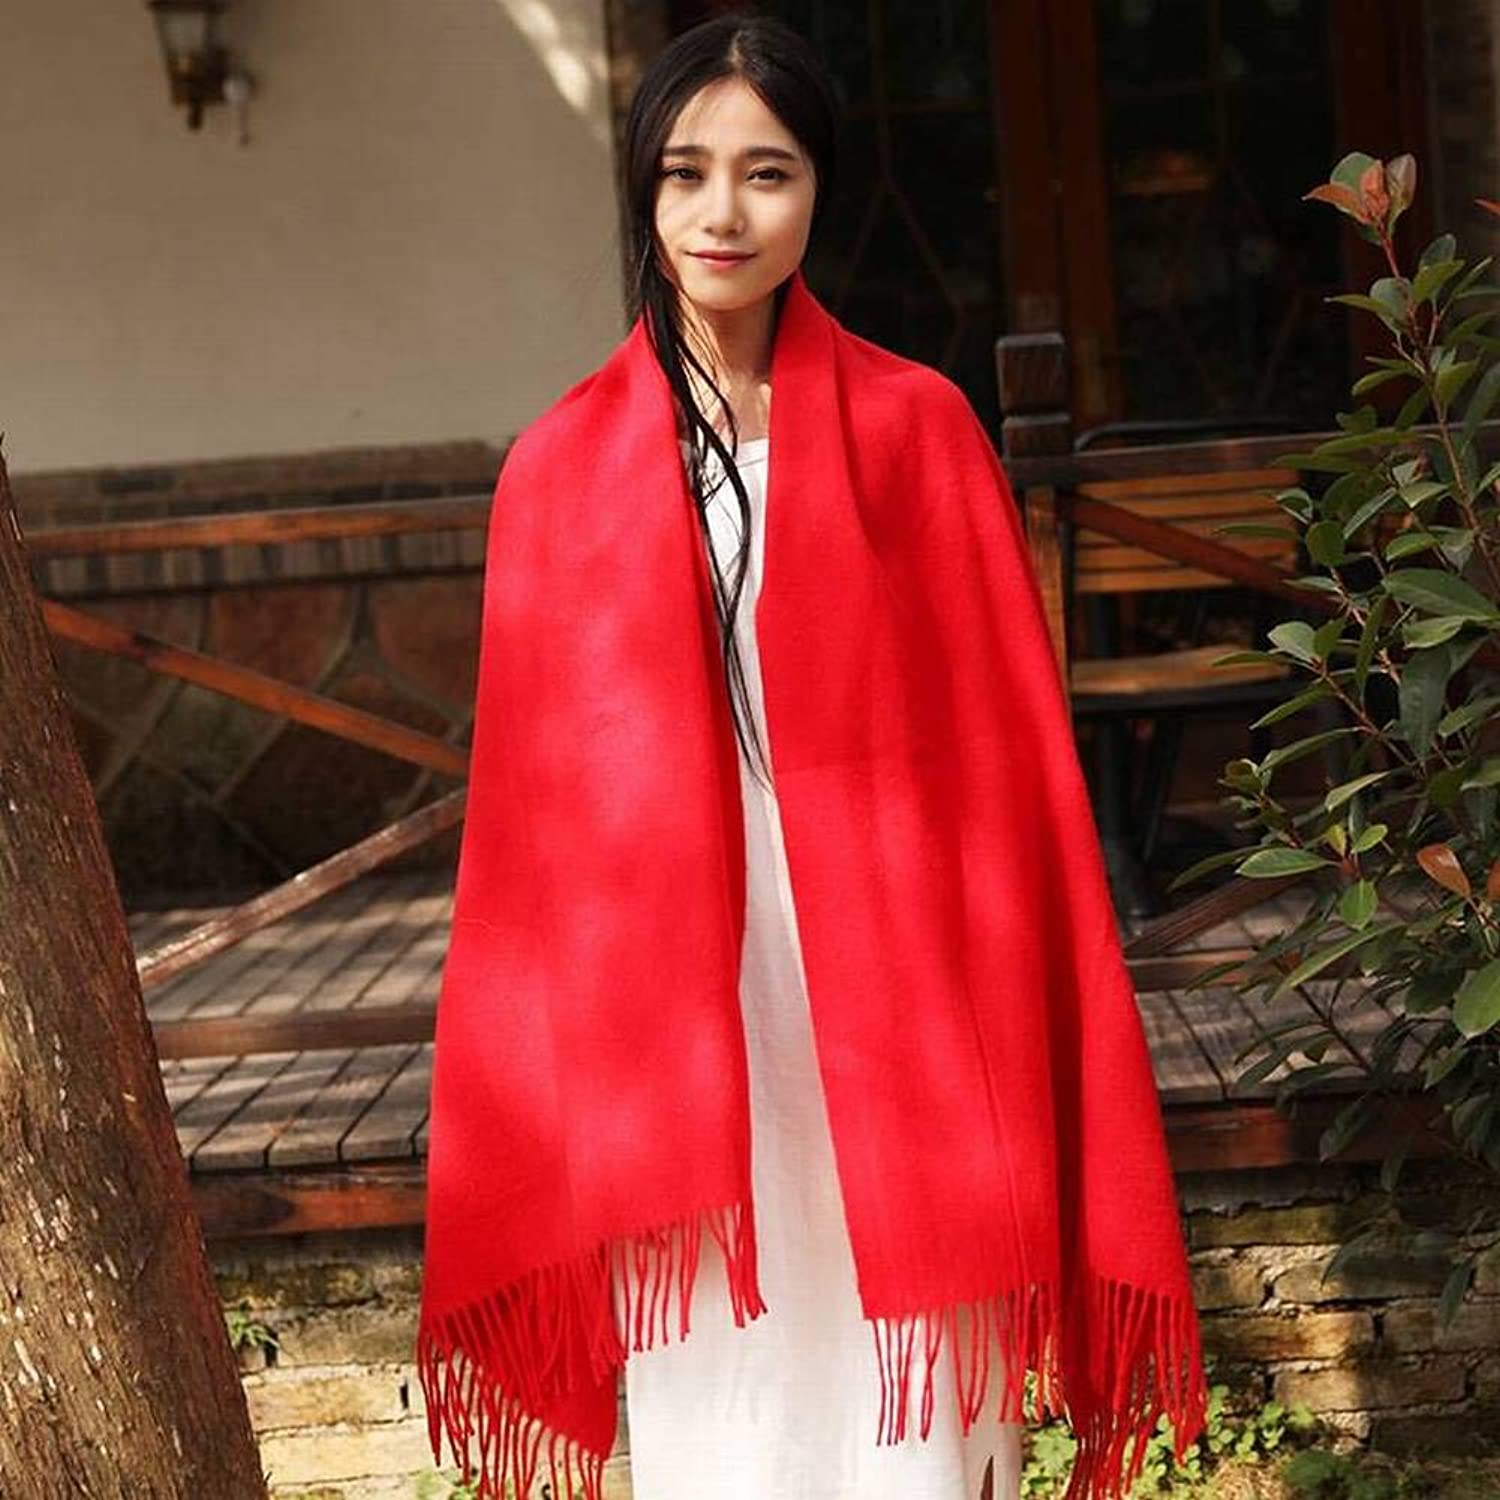 WJL Elegant Ladies Crocheted Wool Women Warm Flowers Long Scarf and Winter Outdoor MultiPurpose Fgreyion Trend Wild Warm Shawl Scarf Gift